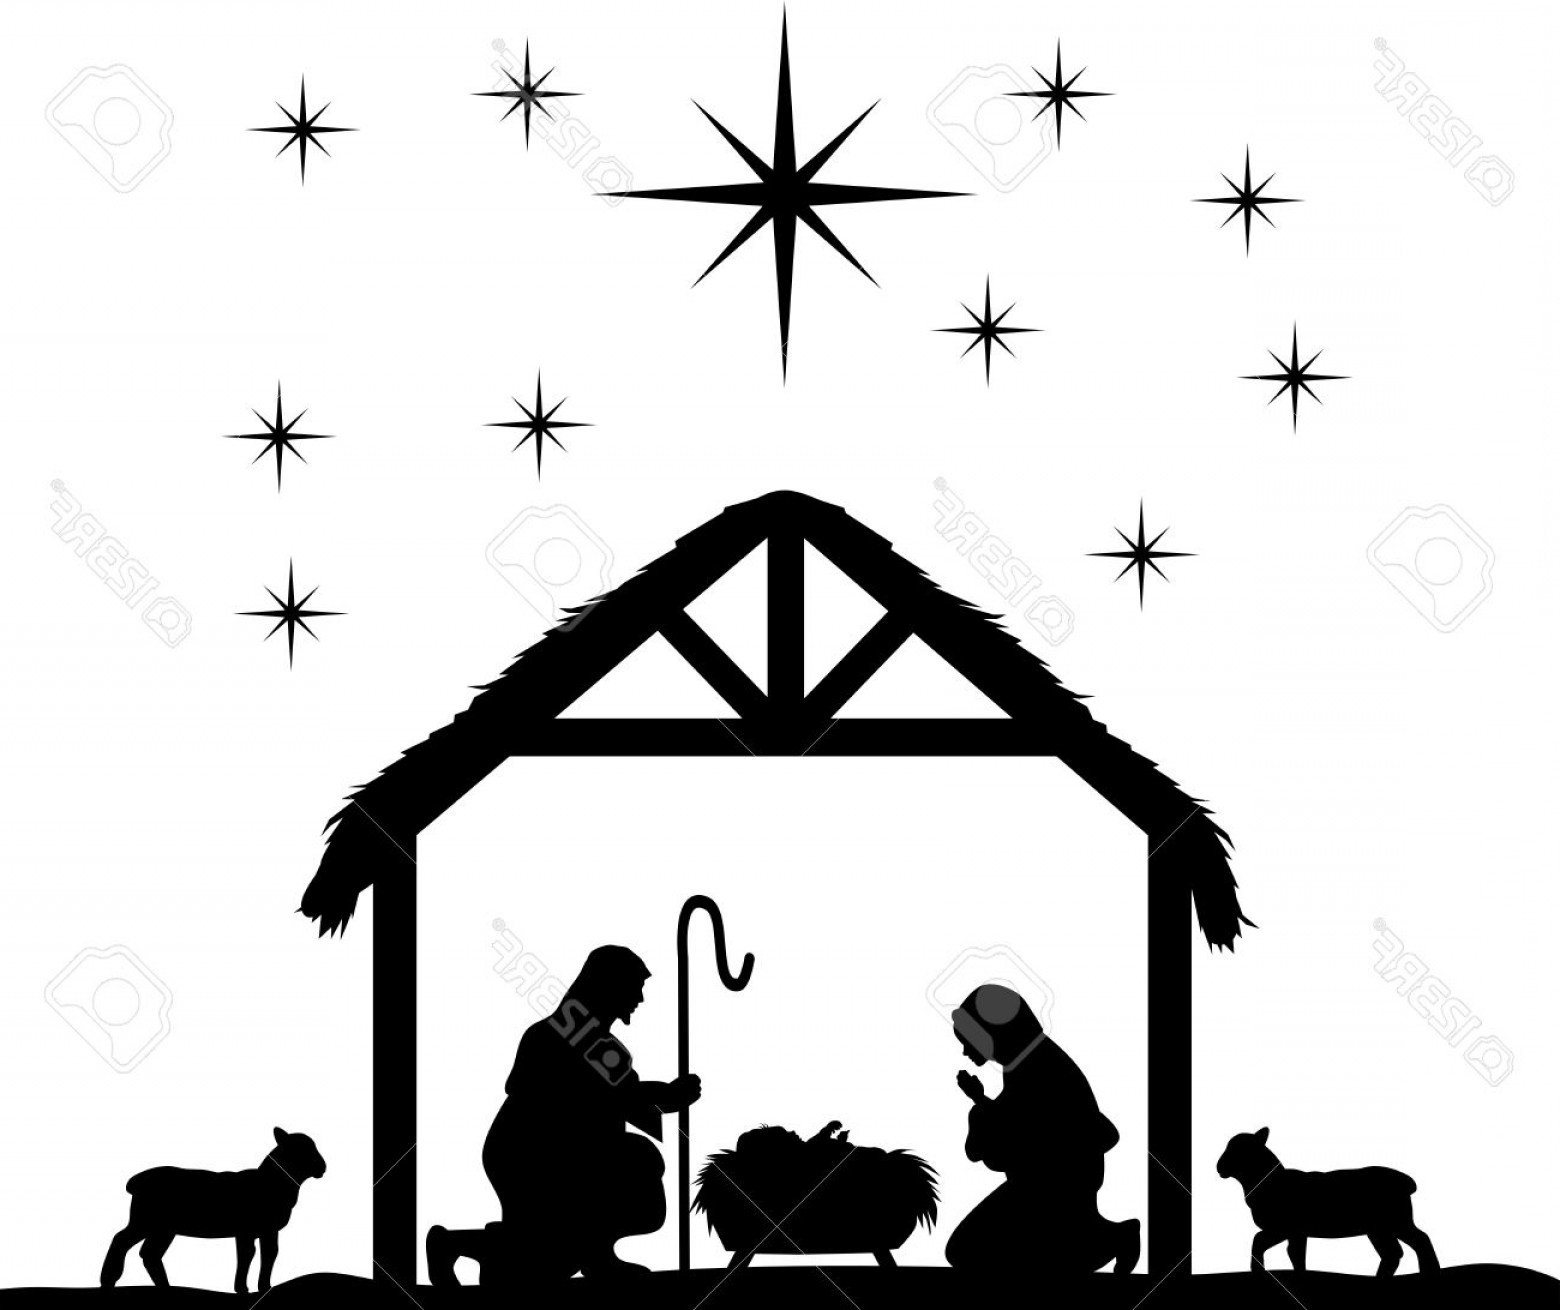 Black Horse Vector Scene: Photostock Vector Traditional Christian Christmas Nativity Scene Of Baby Jesus In The Manger With Mary And Joseph